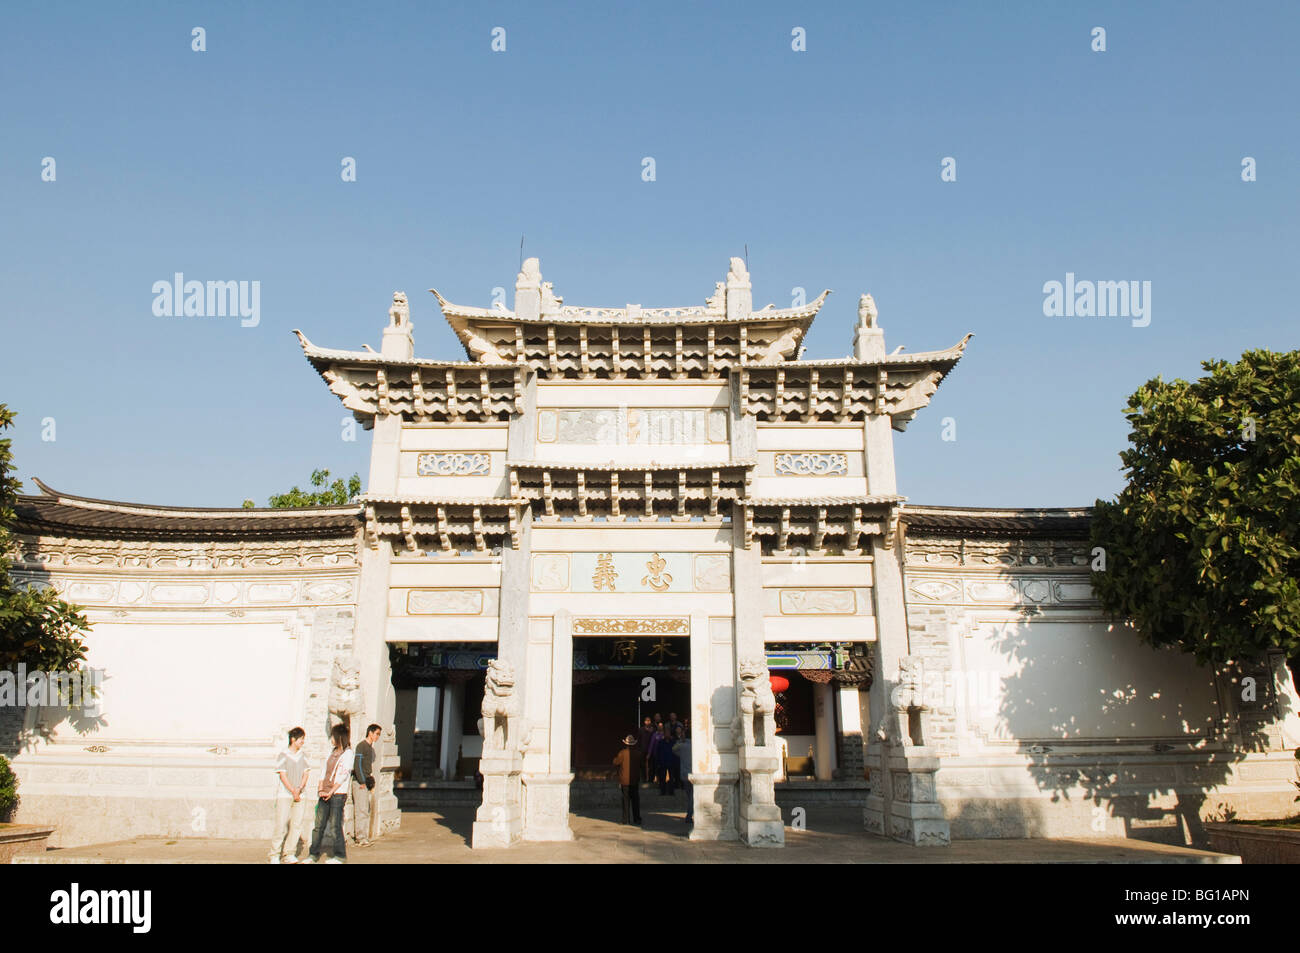 Mufu Temple Gate in Lijiang Old Town, UNESCO World Heritage Site, Yunnan Province, China, Asia - Stock Image